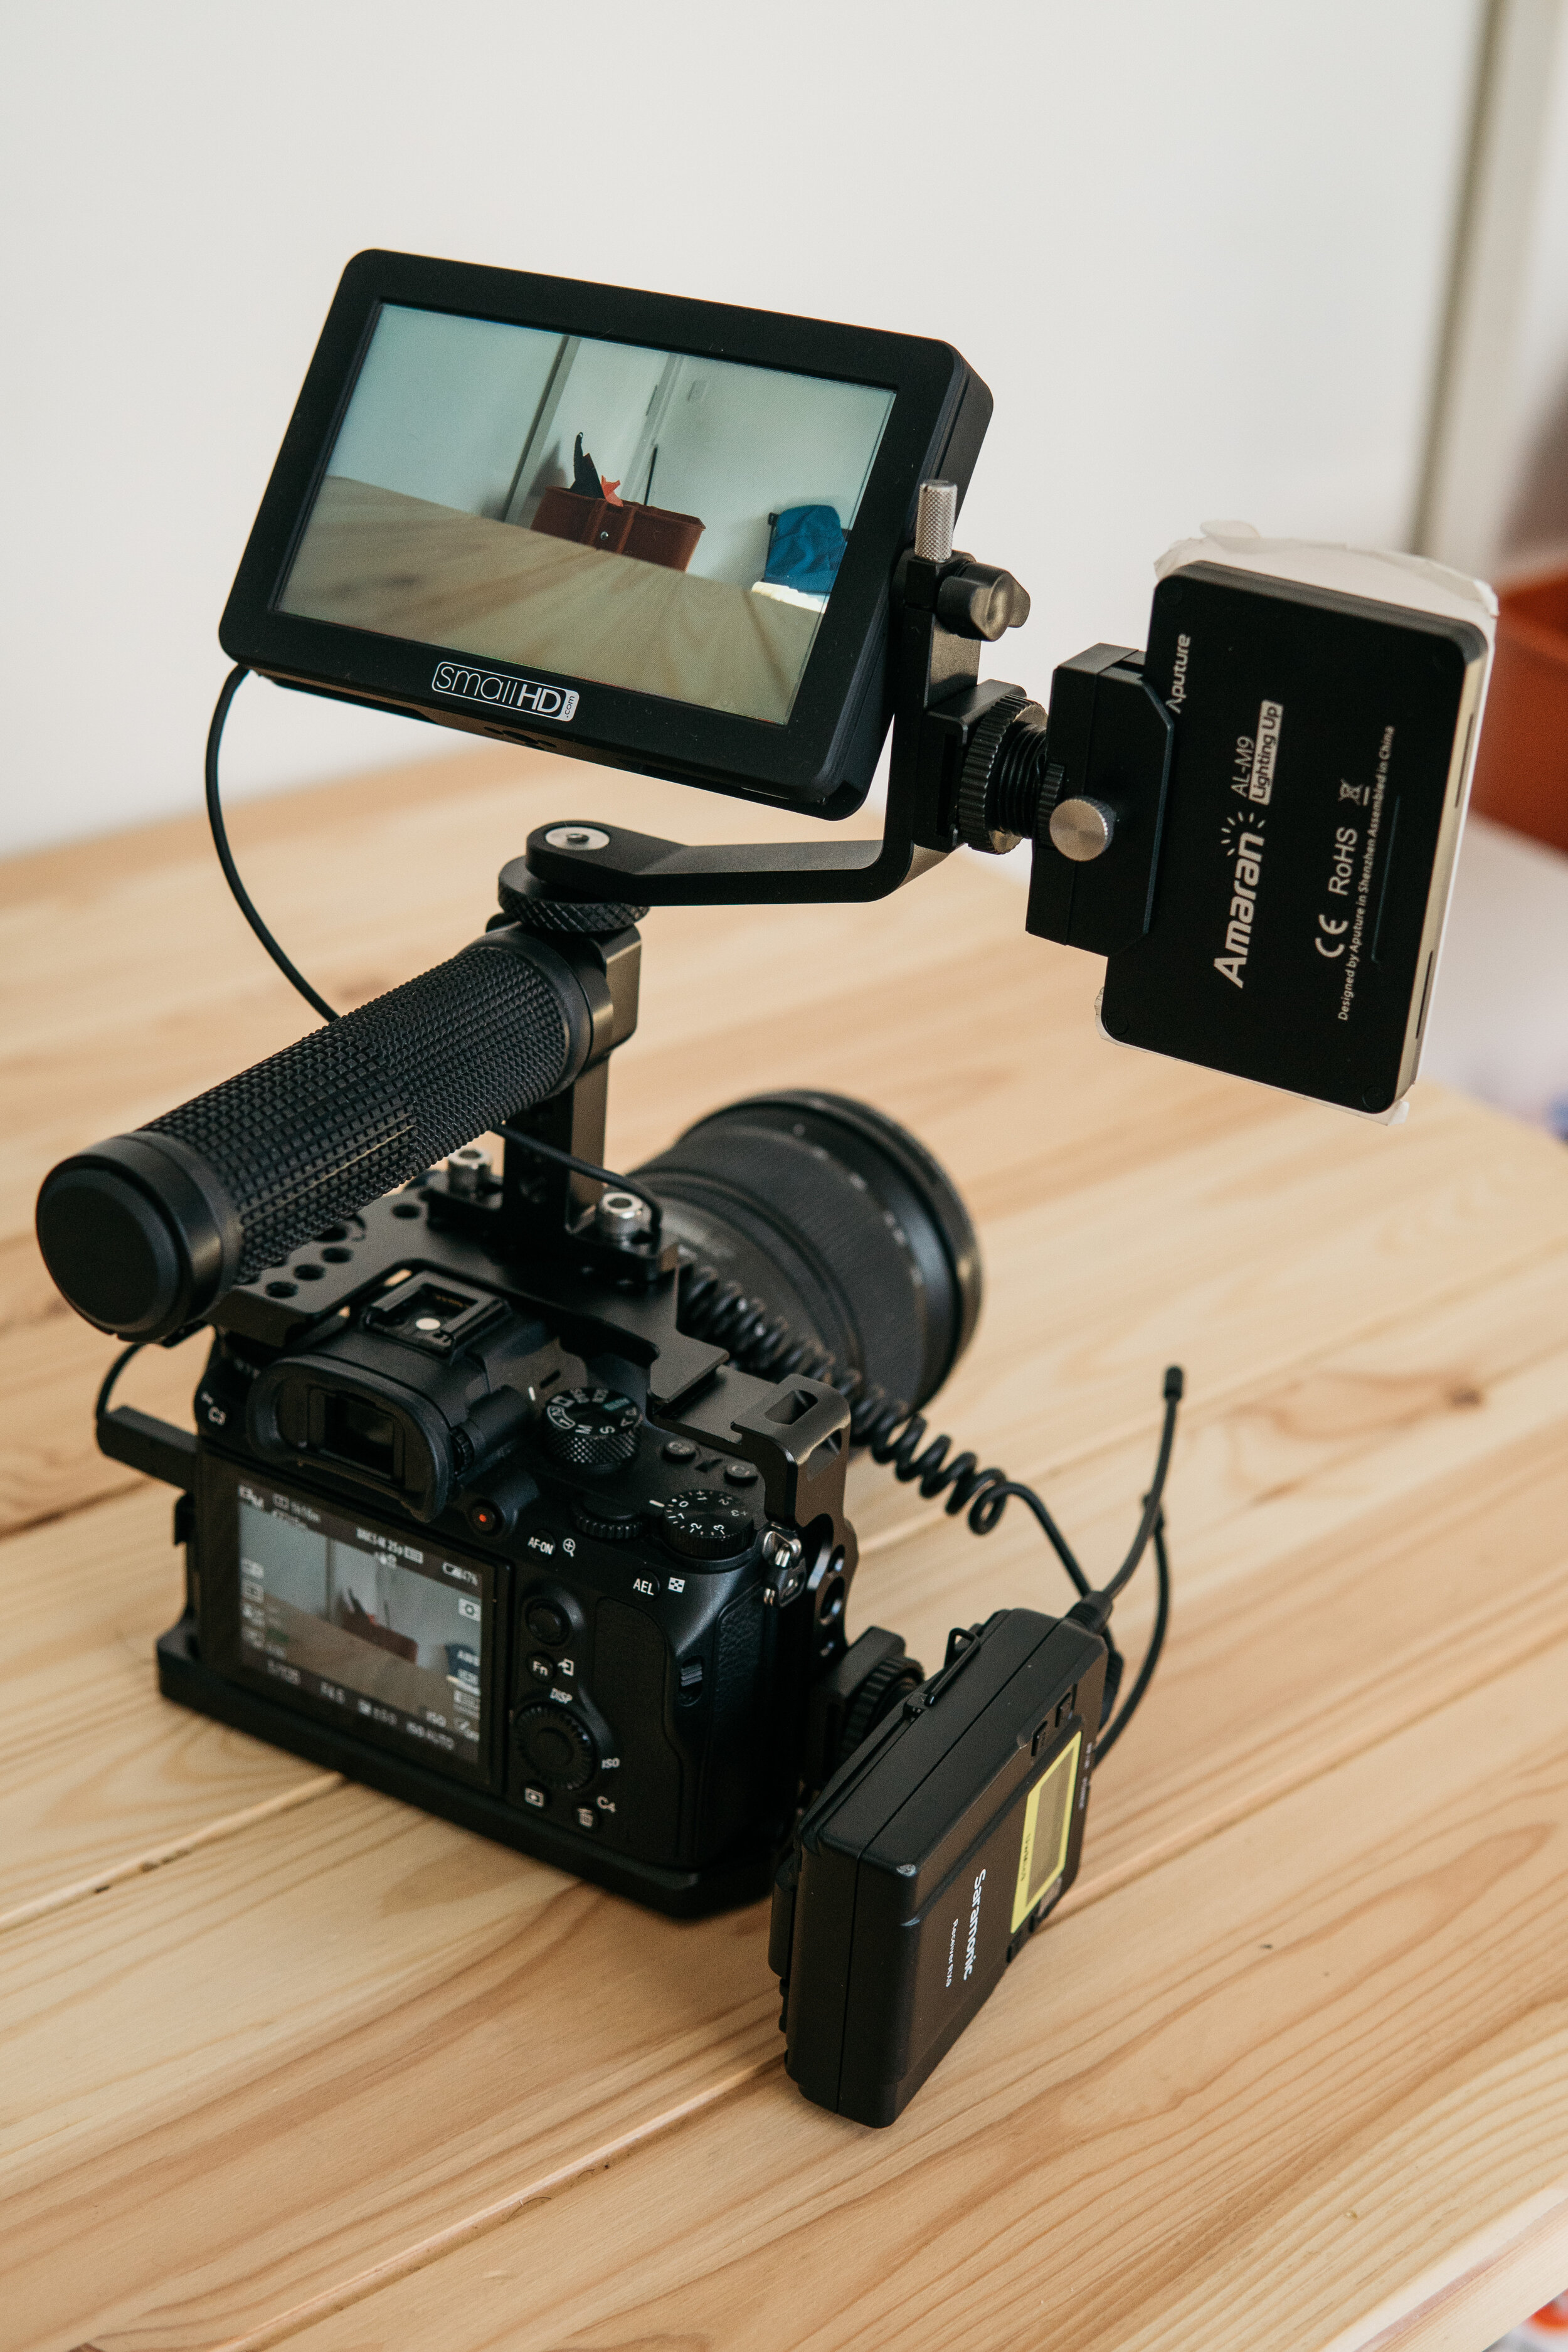 Launching a podcast or video series on YouTube are examples of Big Idea content that can have the potential of generating revenue through sponsorships.